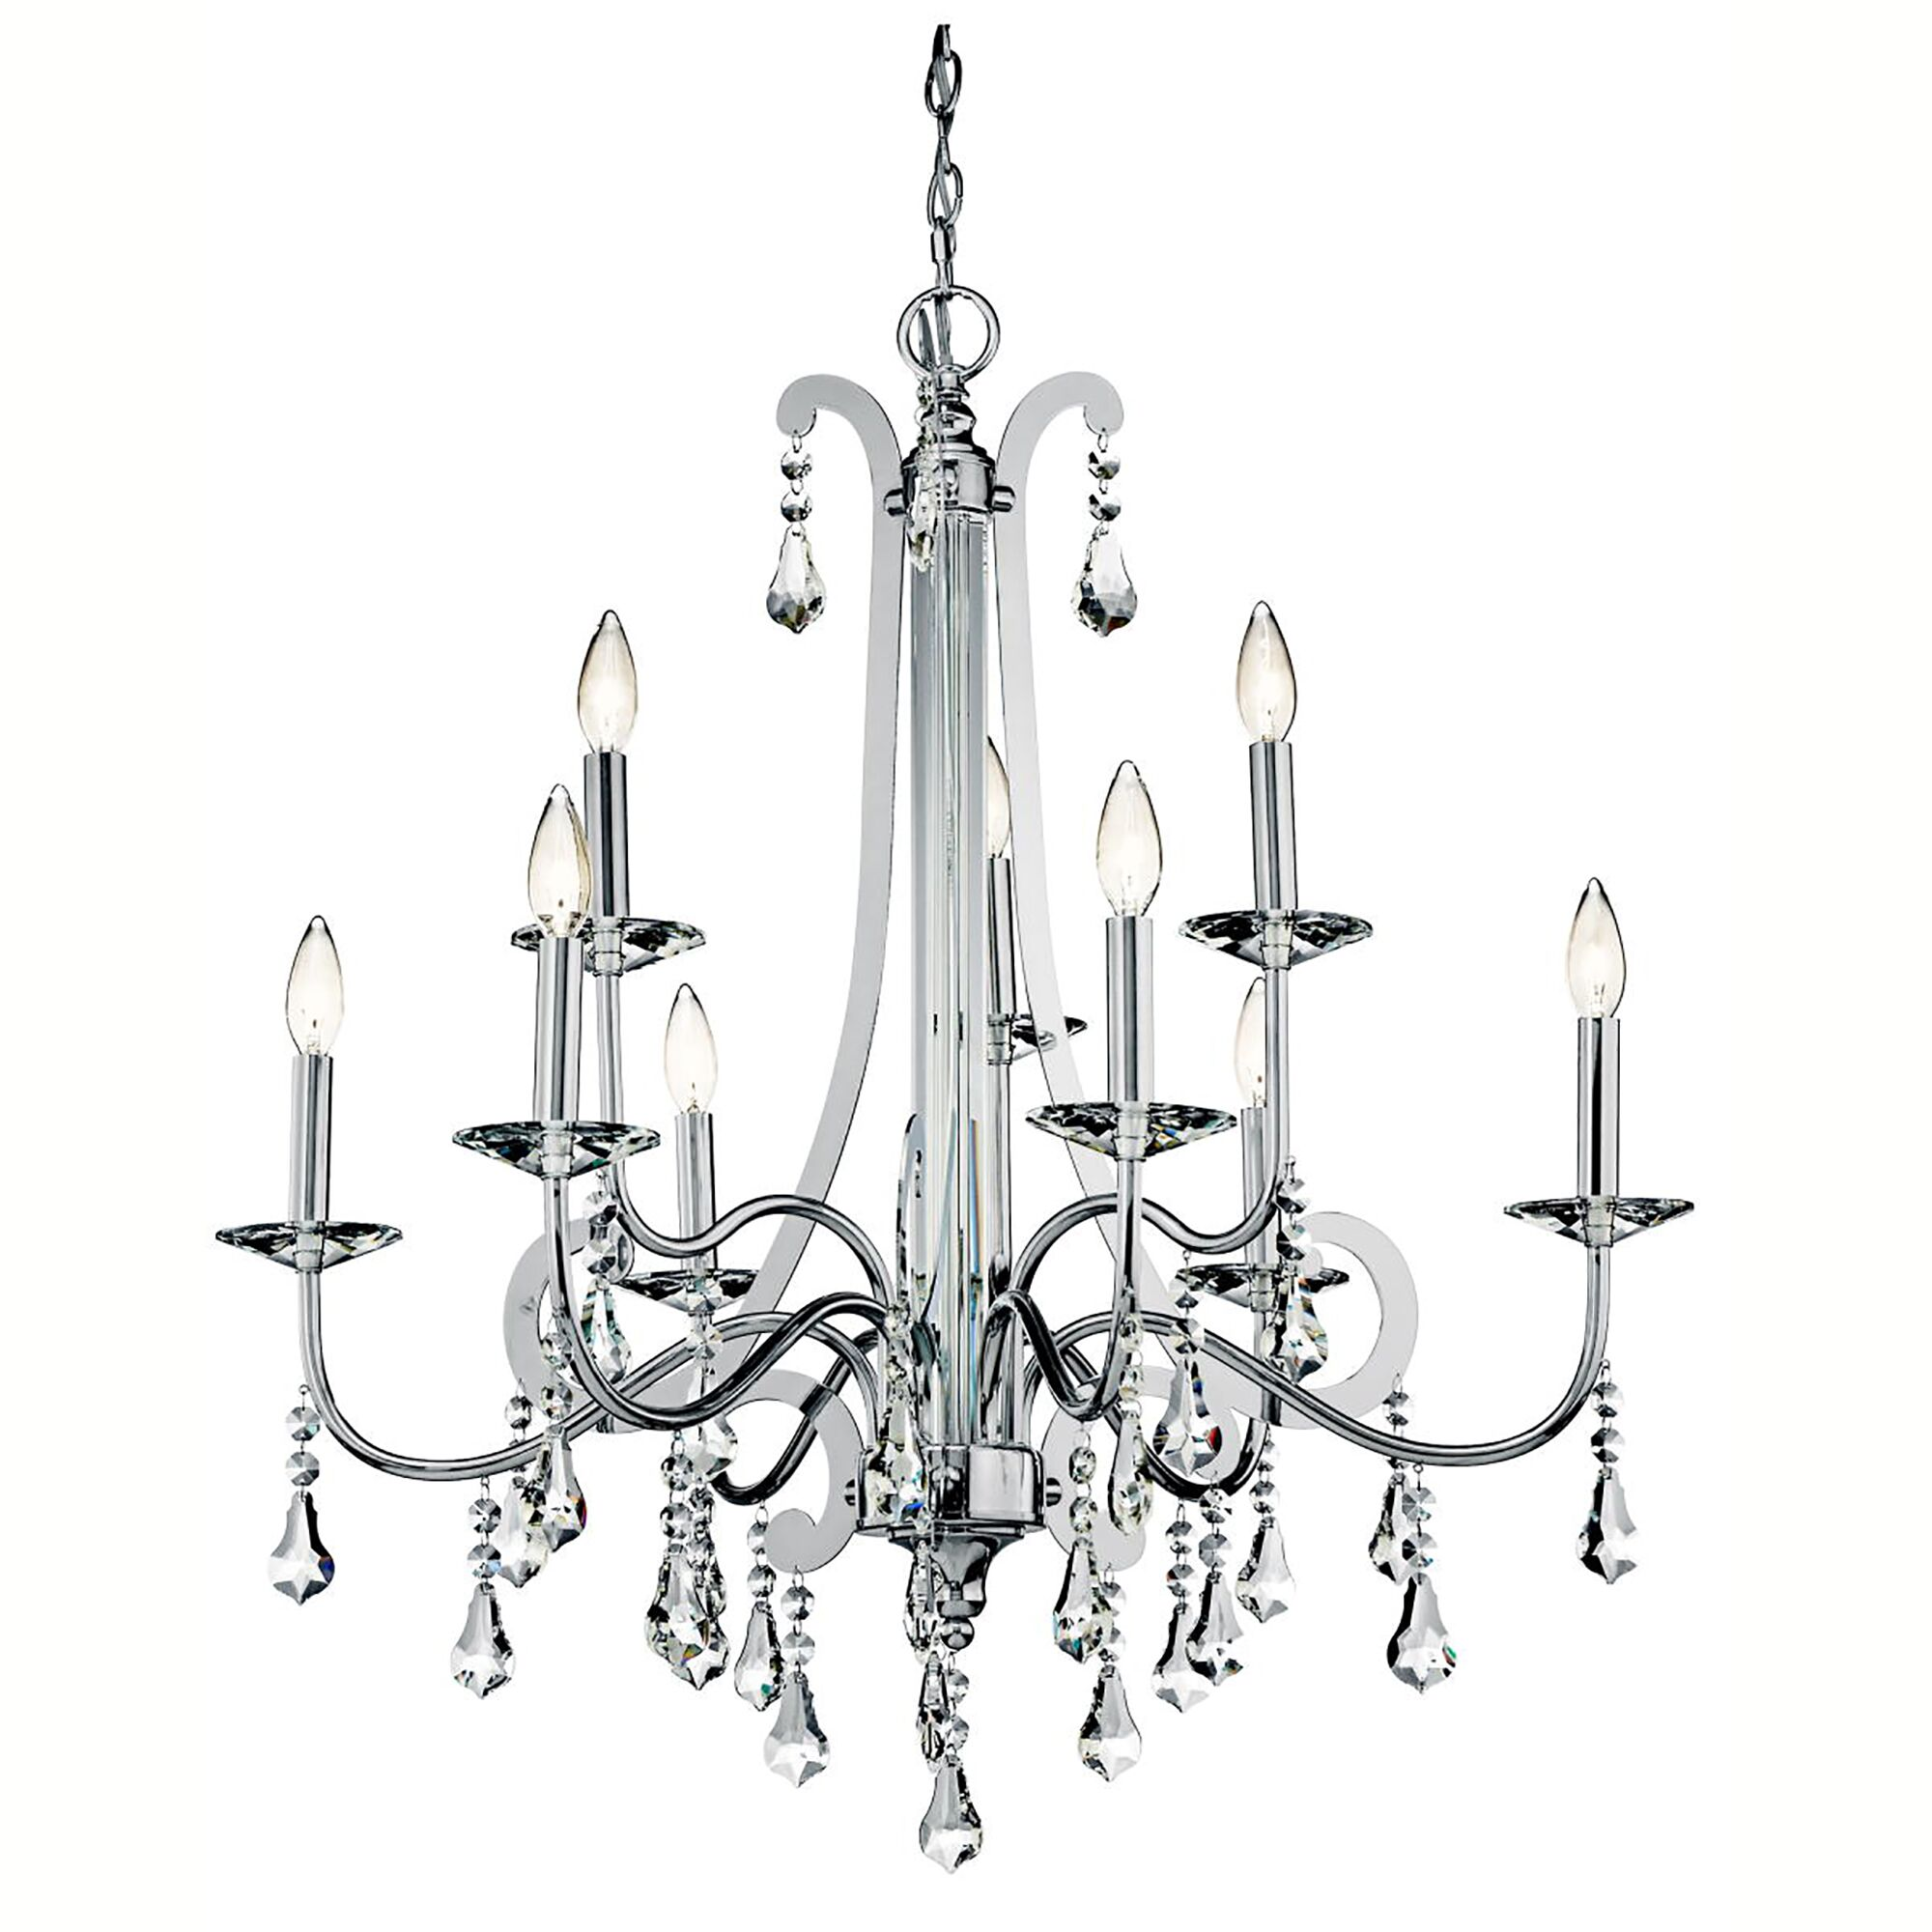 Bowmin 9-Light Candle Style Chandelier